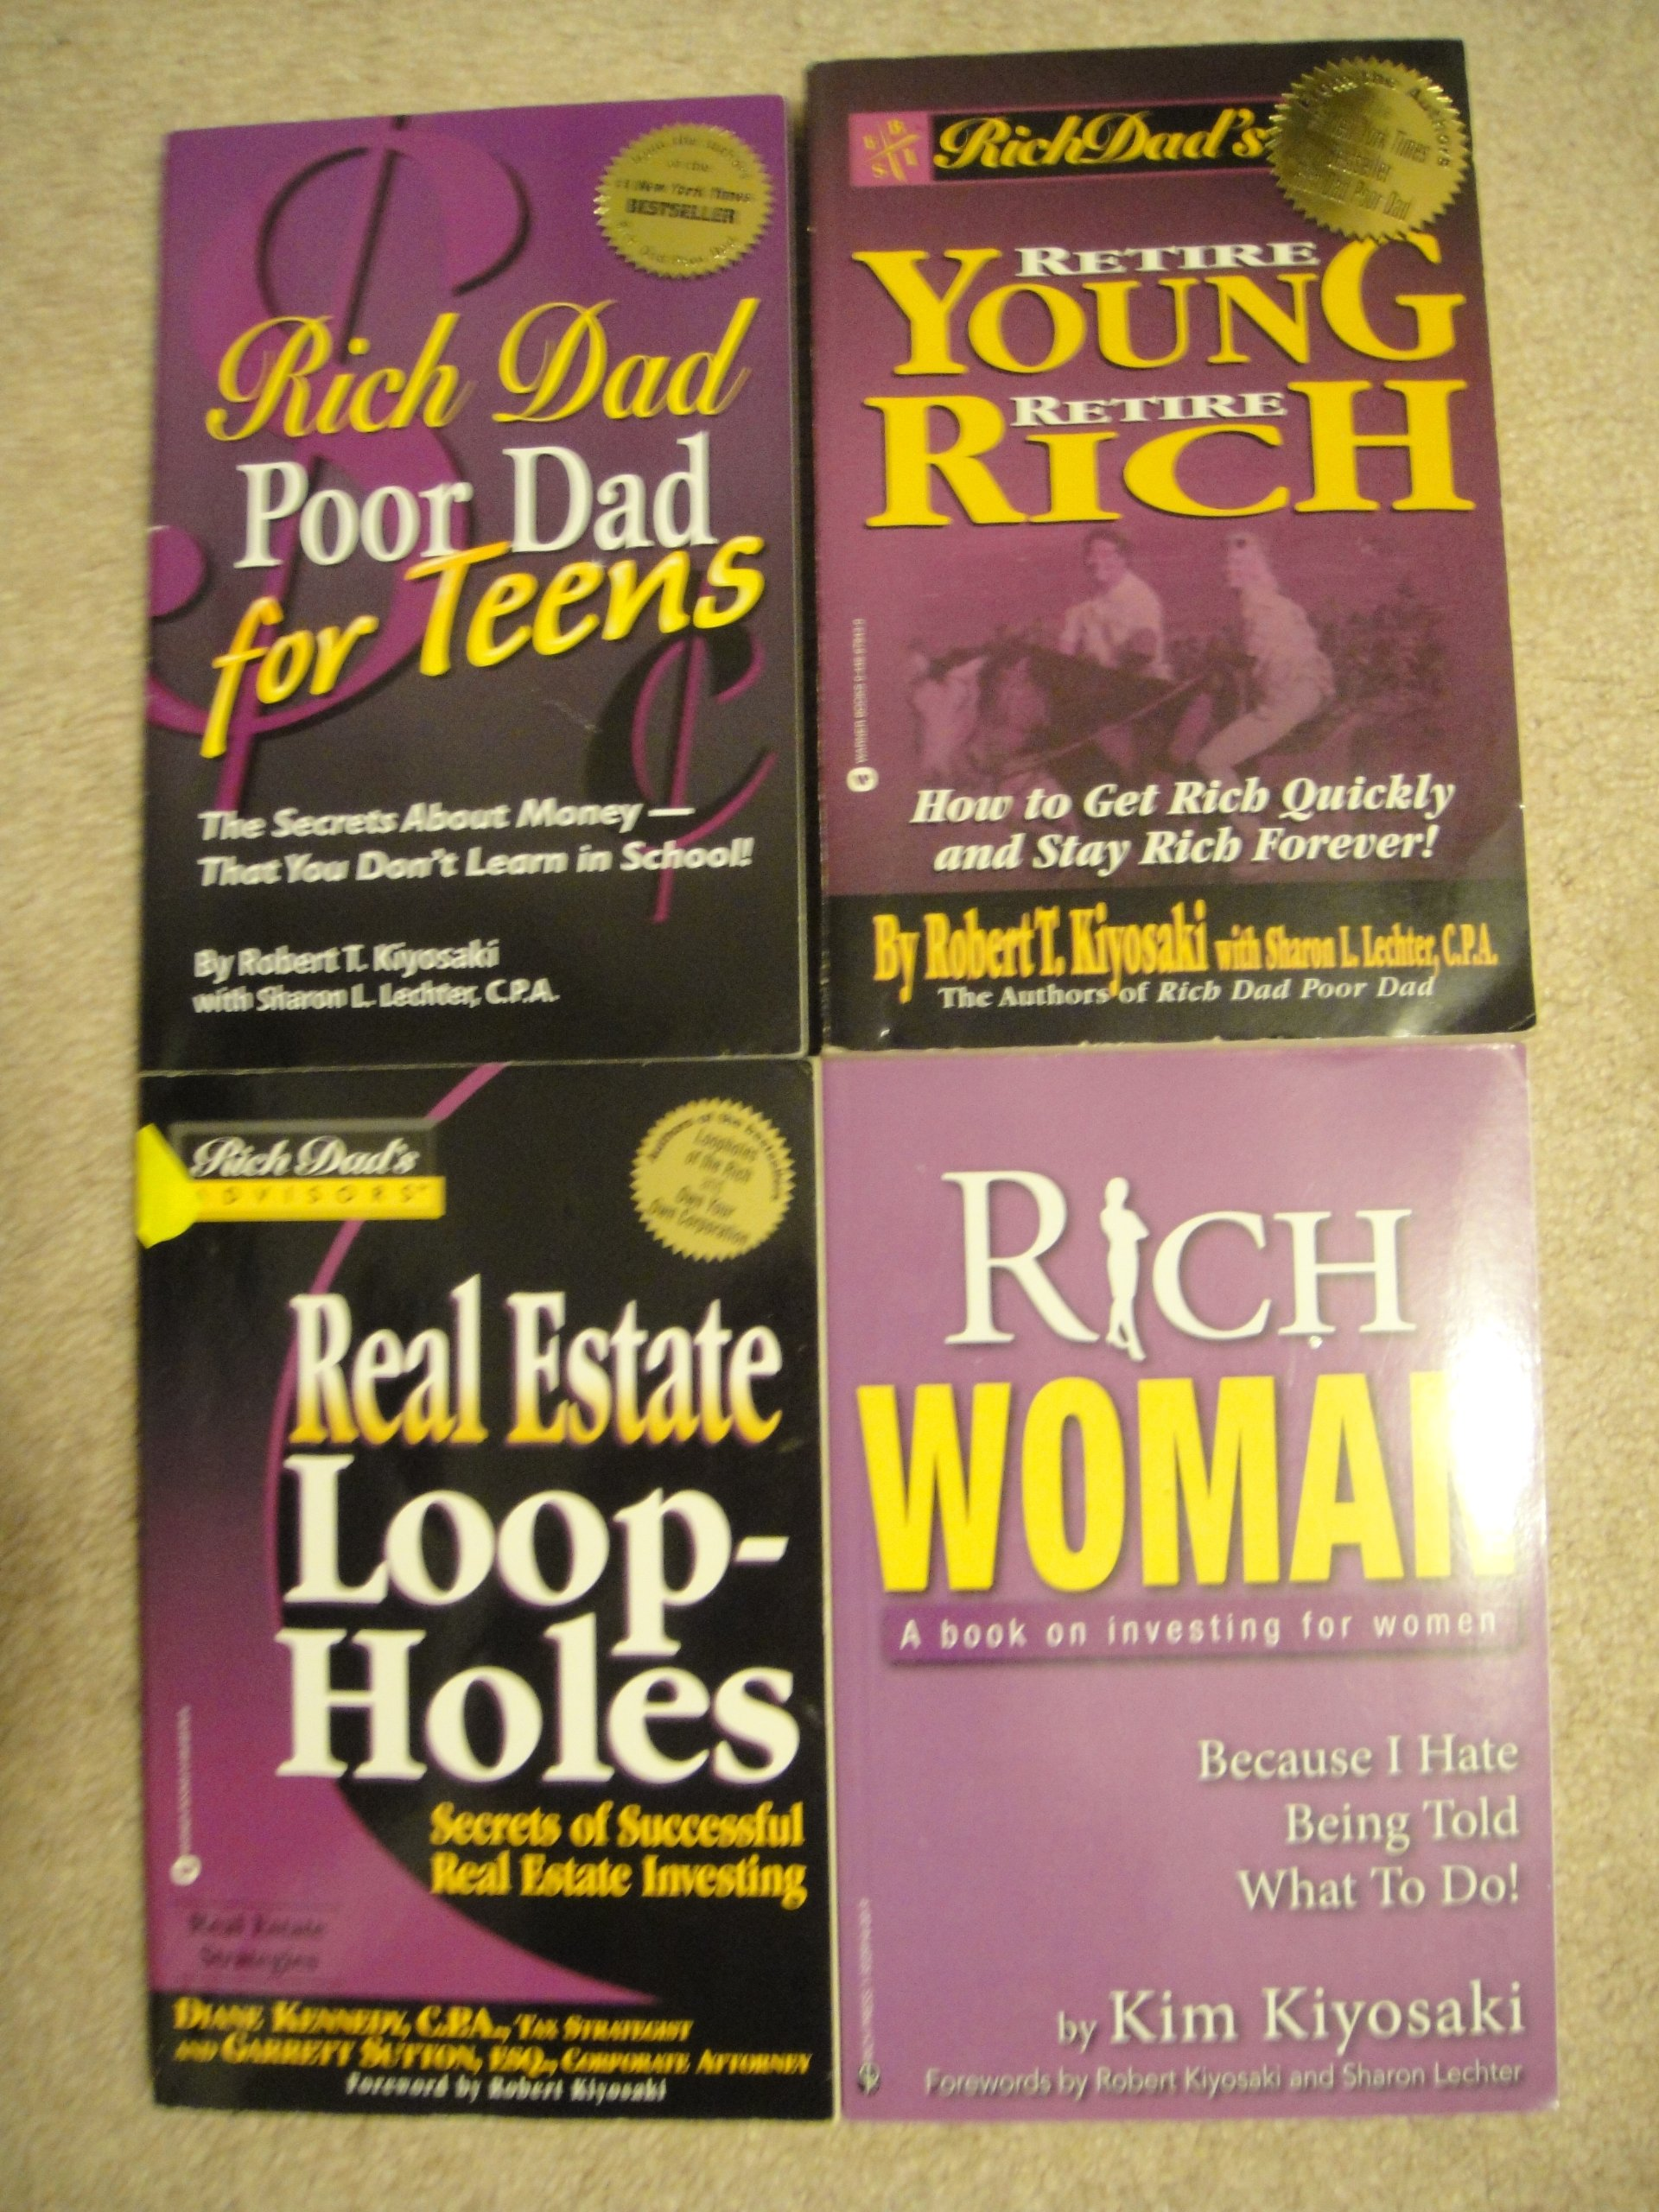 Rich Dads Retire Young, Retire Rich: How to Get Rich Quickly and Stay Rich Forever!